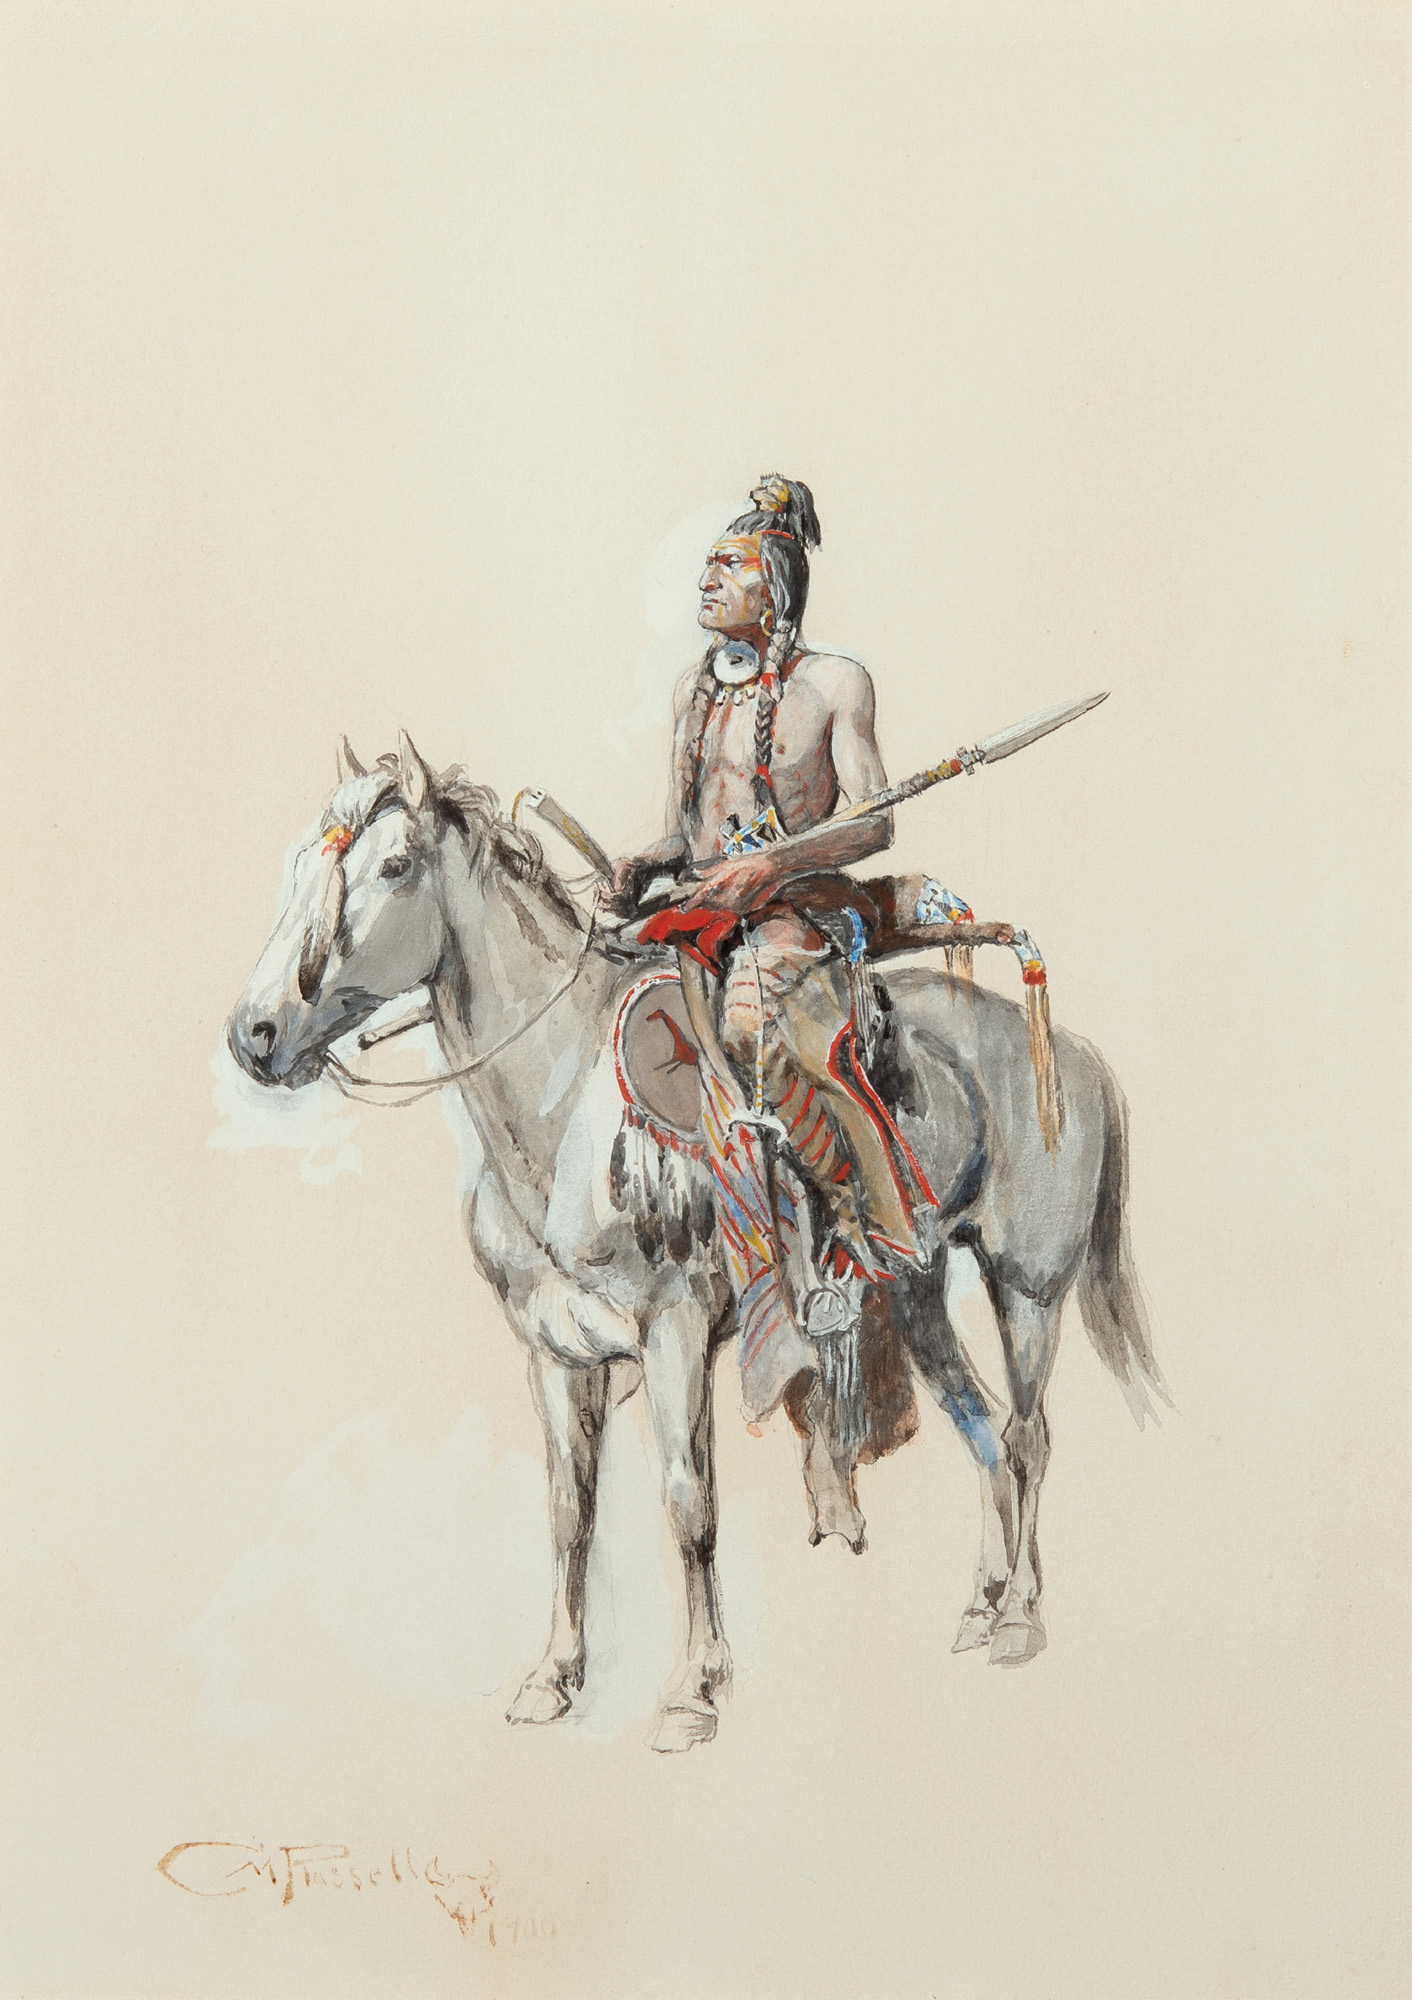 Indian on Horseback. 14 x 11 inches